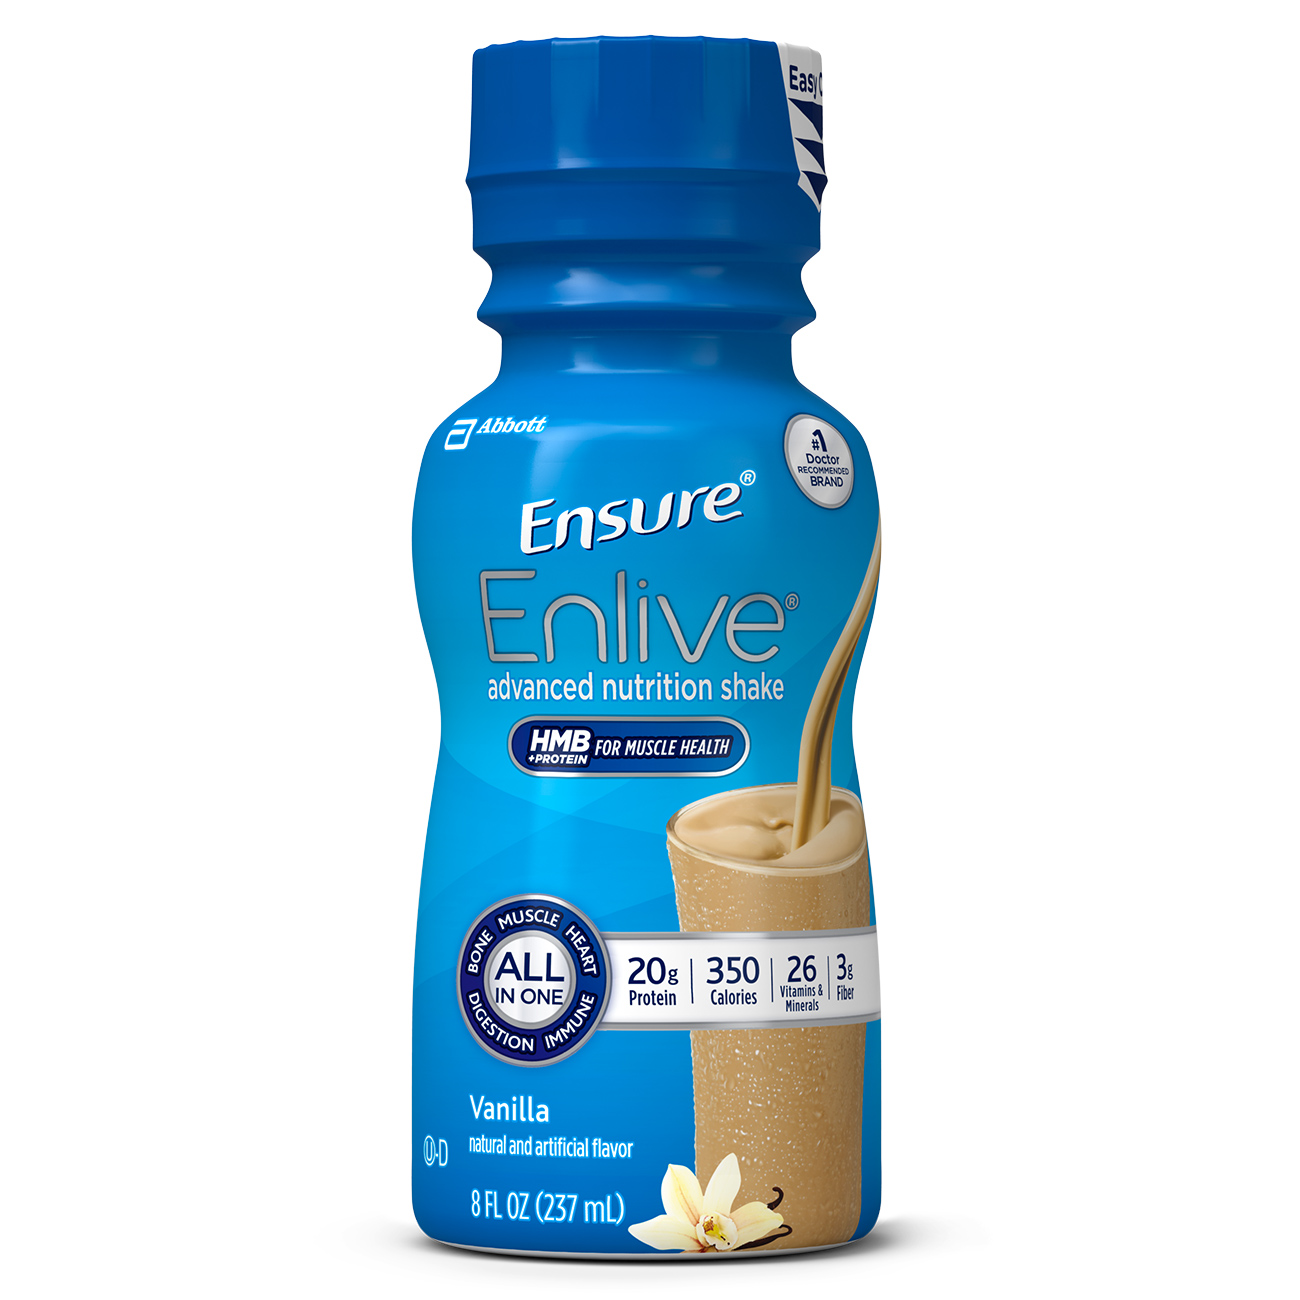 Ensure Enlive Advanced Nutrition Shake Vanilla with 20 grams of high-quality protein, Meal Replacement Shakes, 8 fl oz Bottles (Pack of 16)